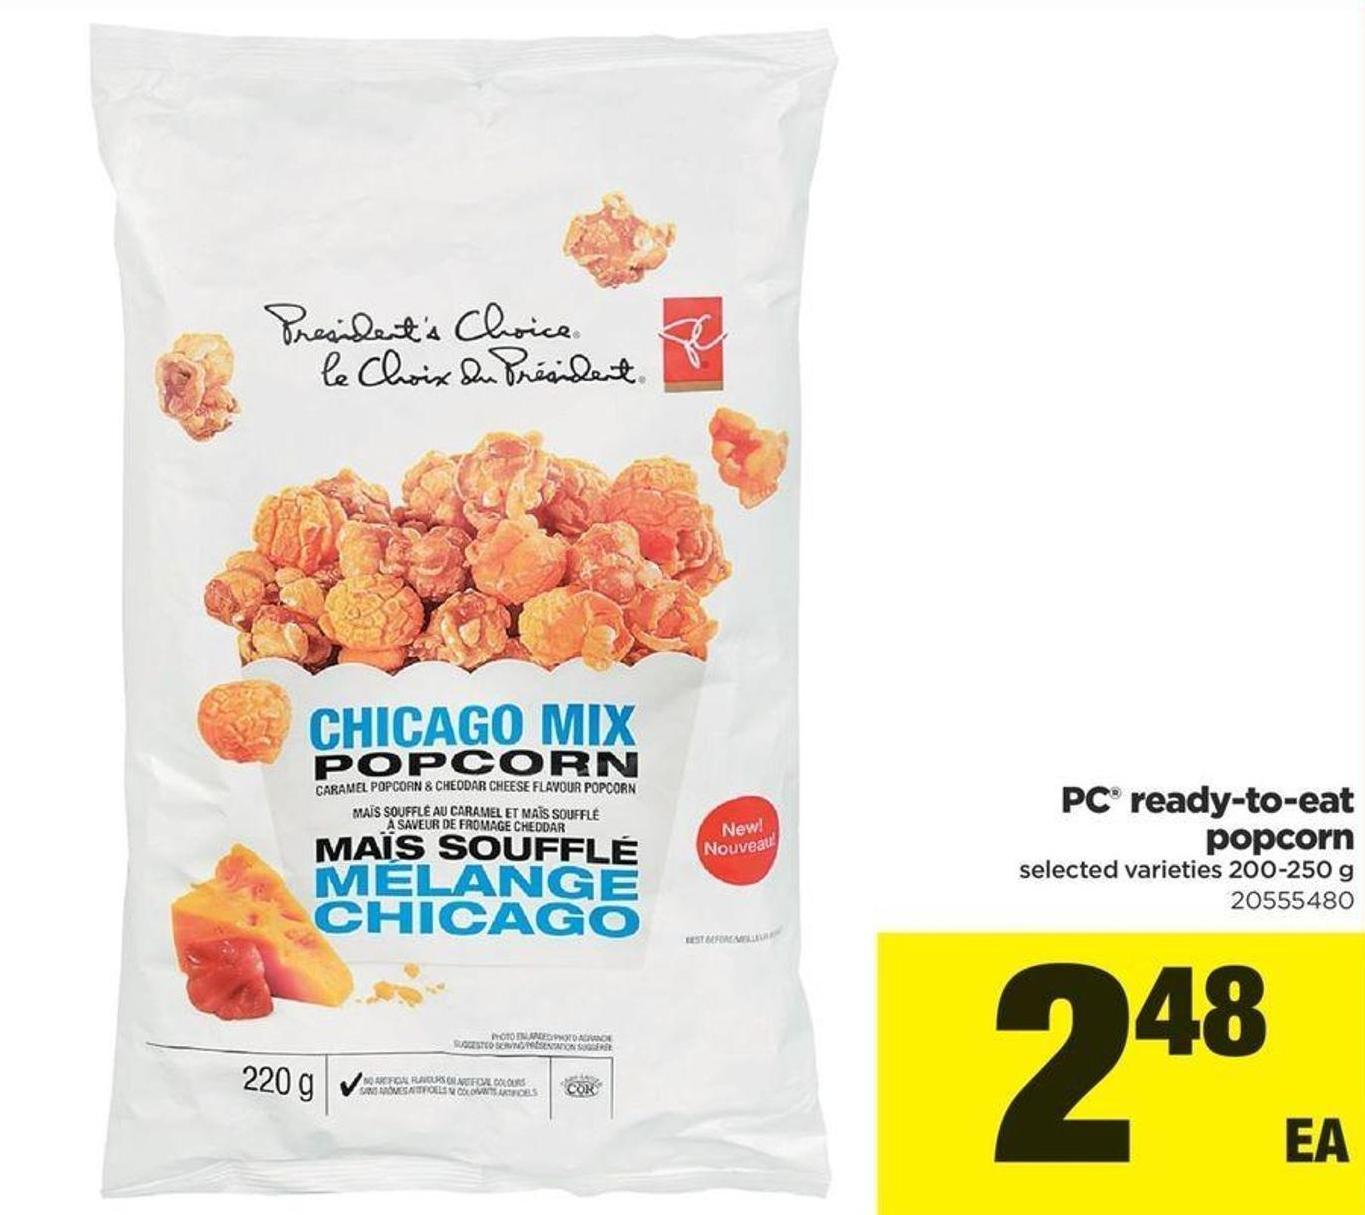 PC Ready-to-eat Popcorn - 200-250 G